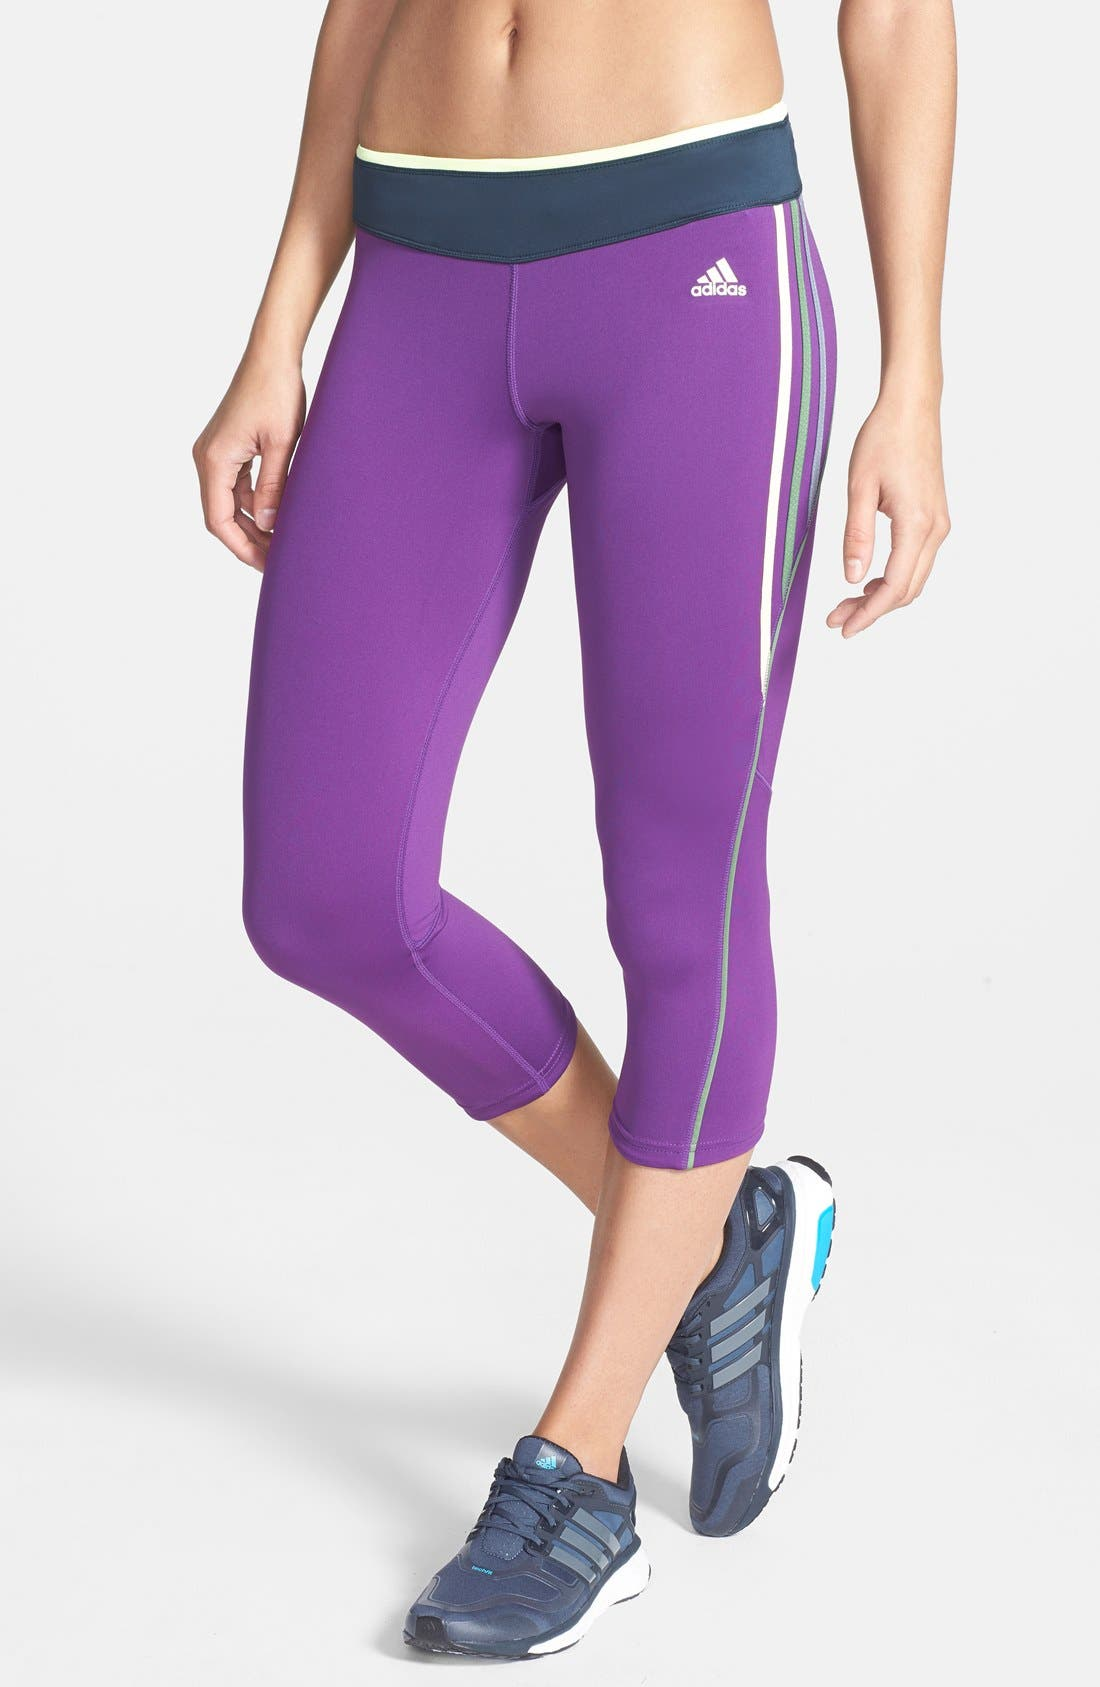 Main Image - adidas 'AKTIV' Three Quarter Tights